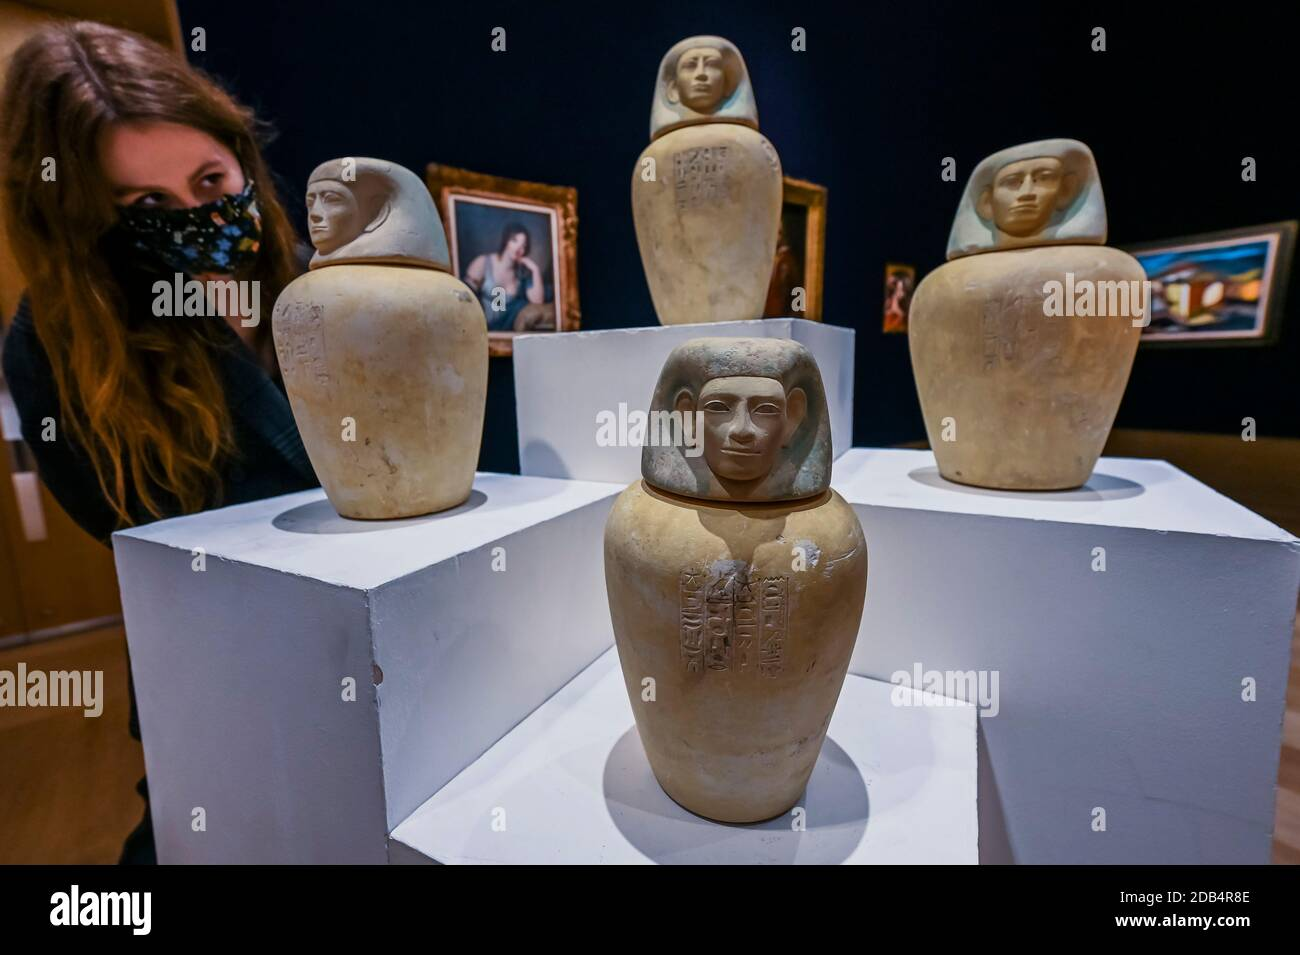 London, UK. 16th Nov, 2020. A set of four Egyptian limestone canopic jars Middle Kingdom, 12th Dynasty, circa 1939-1760 B.C., est £80-120,000 - Preview of Bonhams' Antiquities Sale. The sale will take place on 01 December online from New Bond Street. Credit: Guy Bell/Alamy Live News Stock Photo